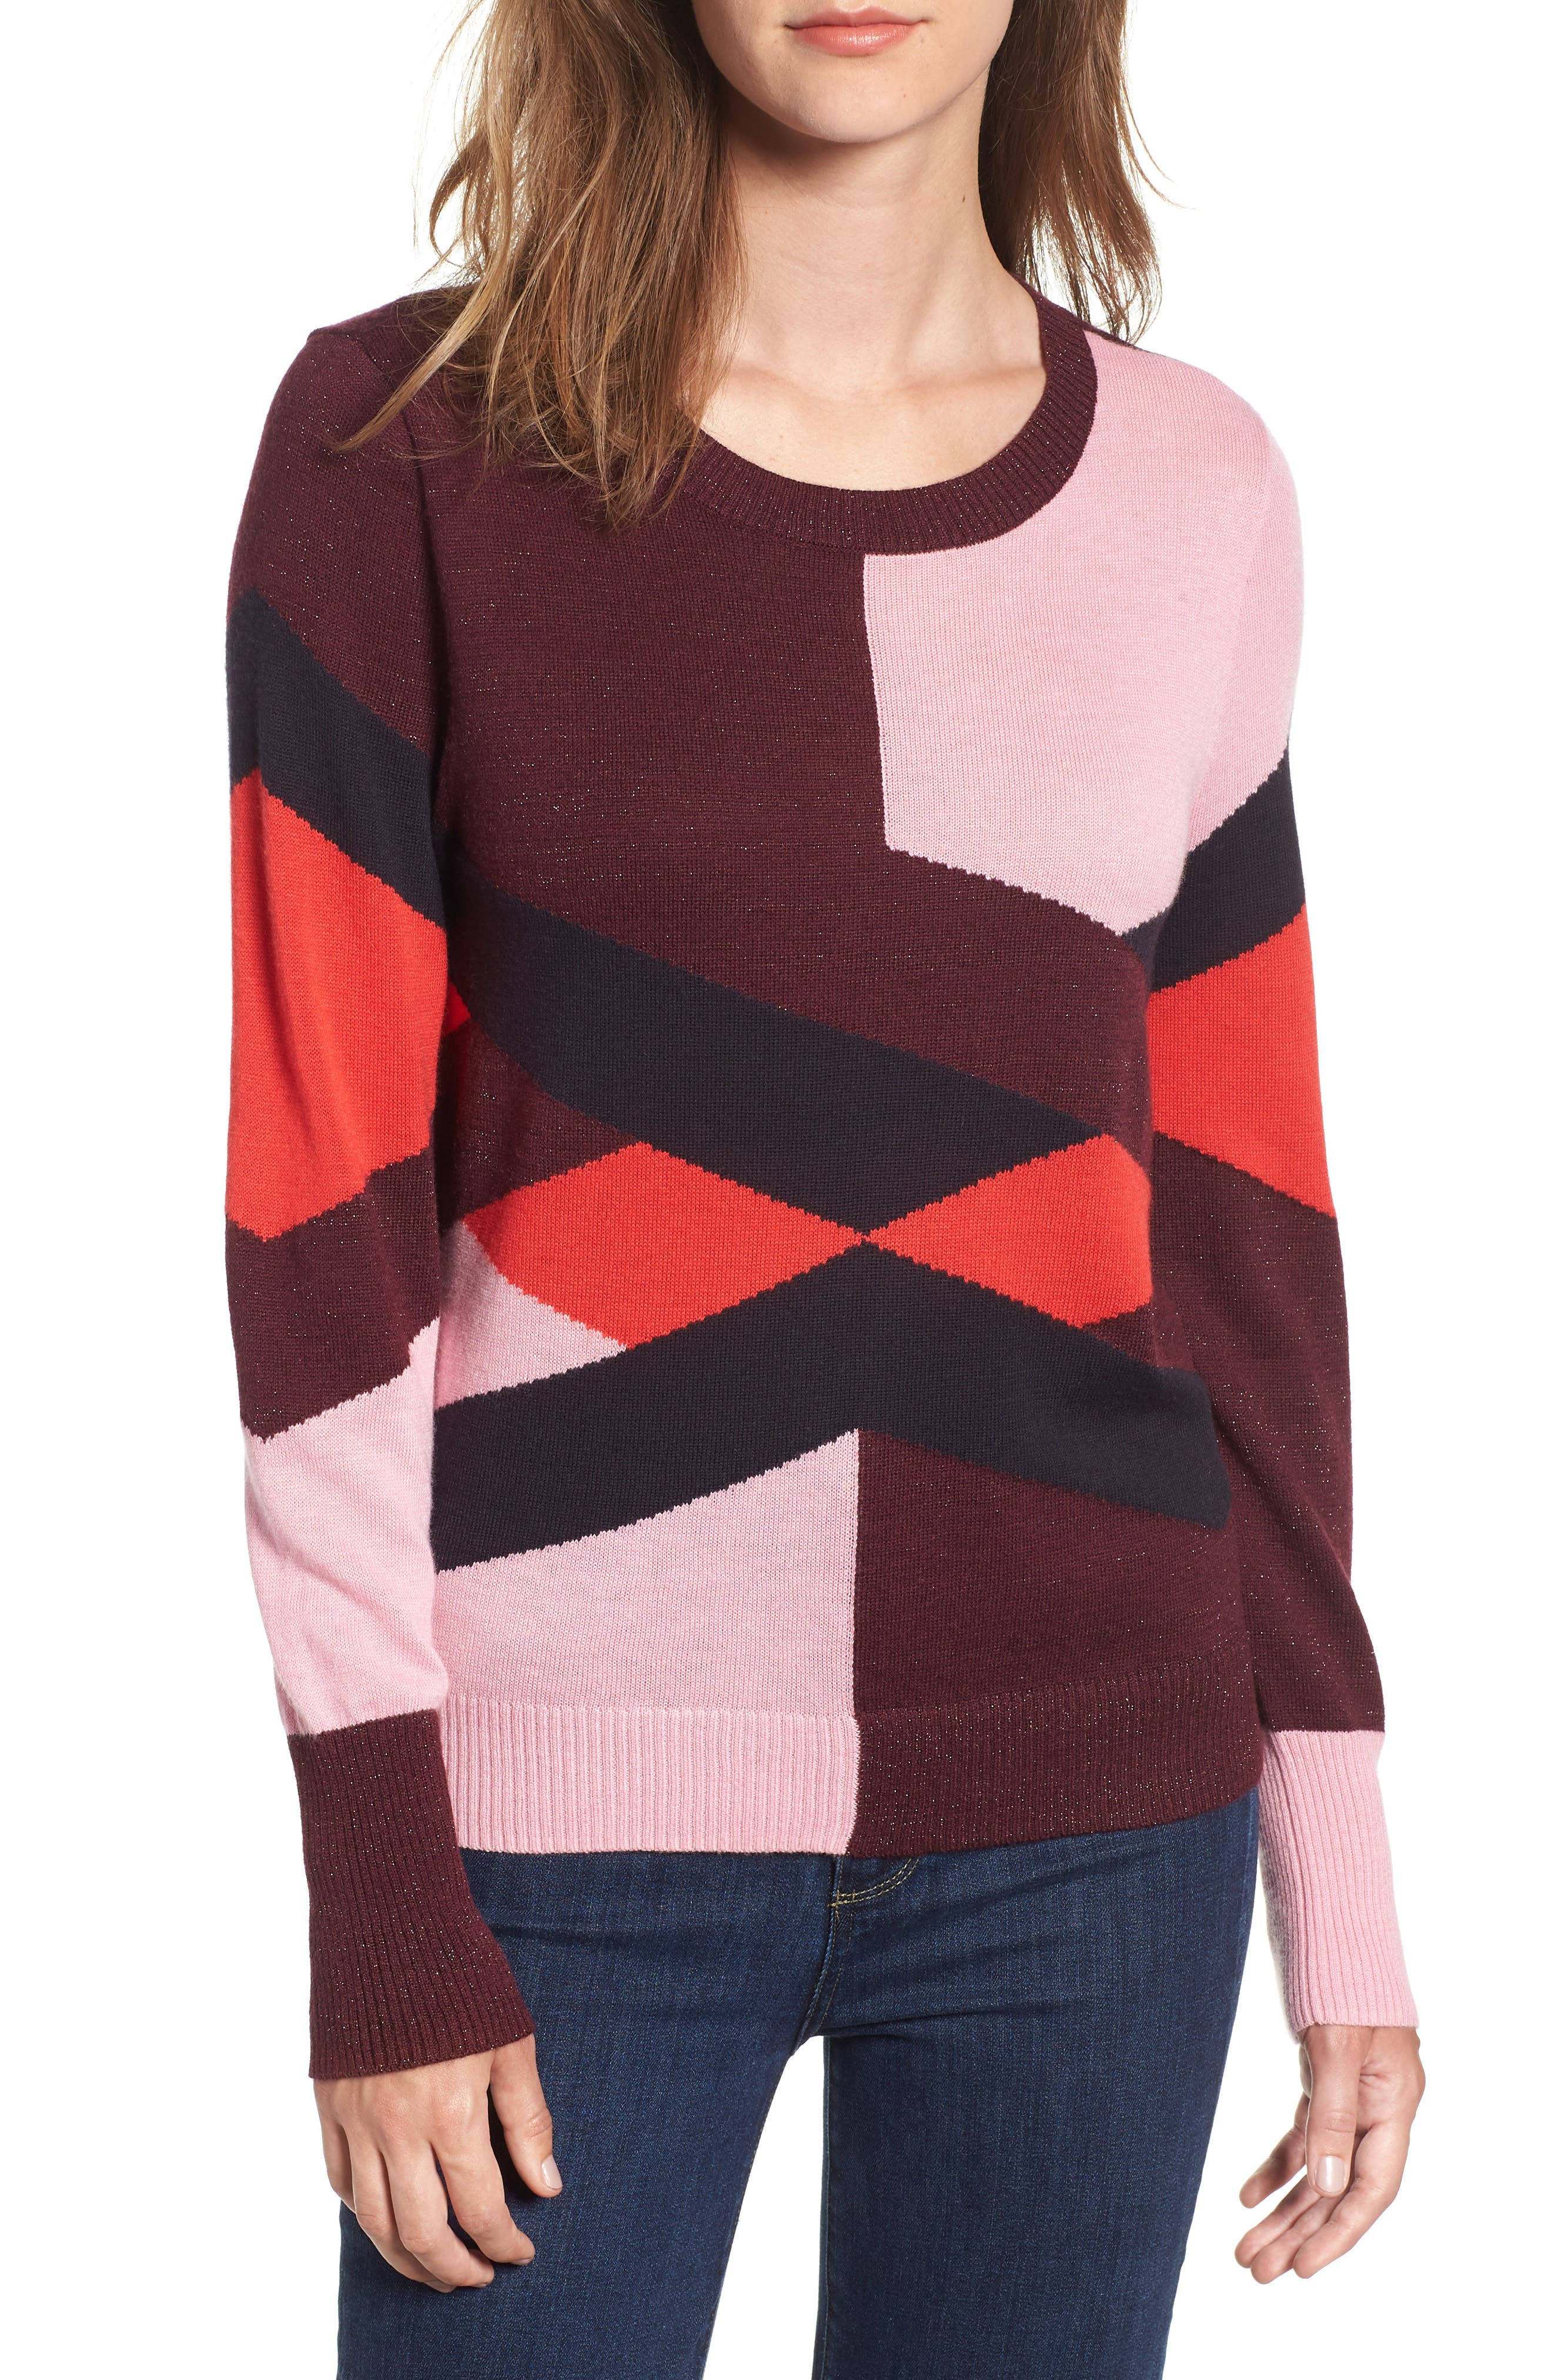 Intarsia Sweater,                         Main,                         color, PINK STORM GRAPHIC INTARSIA